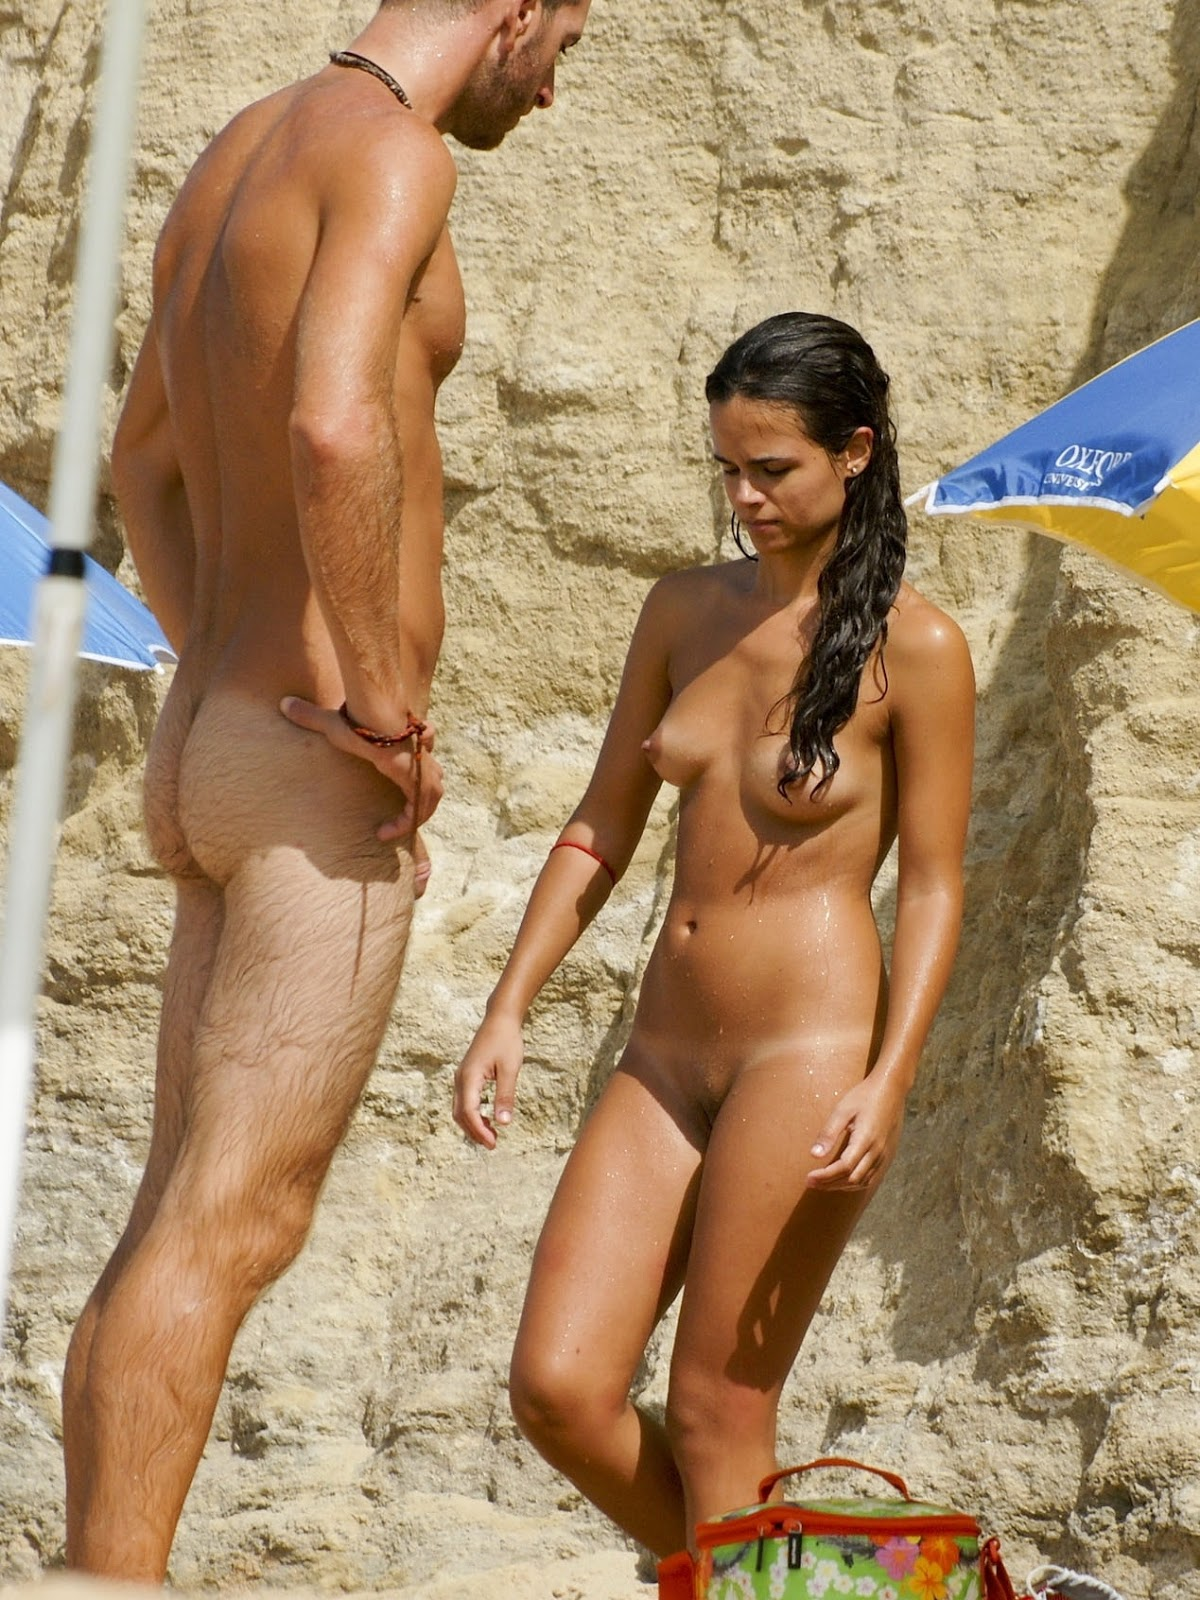 Nudism - Photo - Hq  Nudists - Couple - Nude Beach-8482